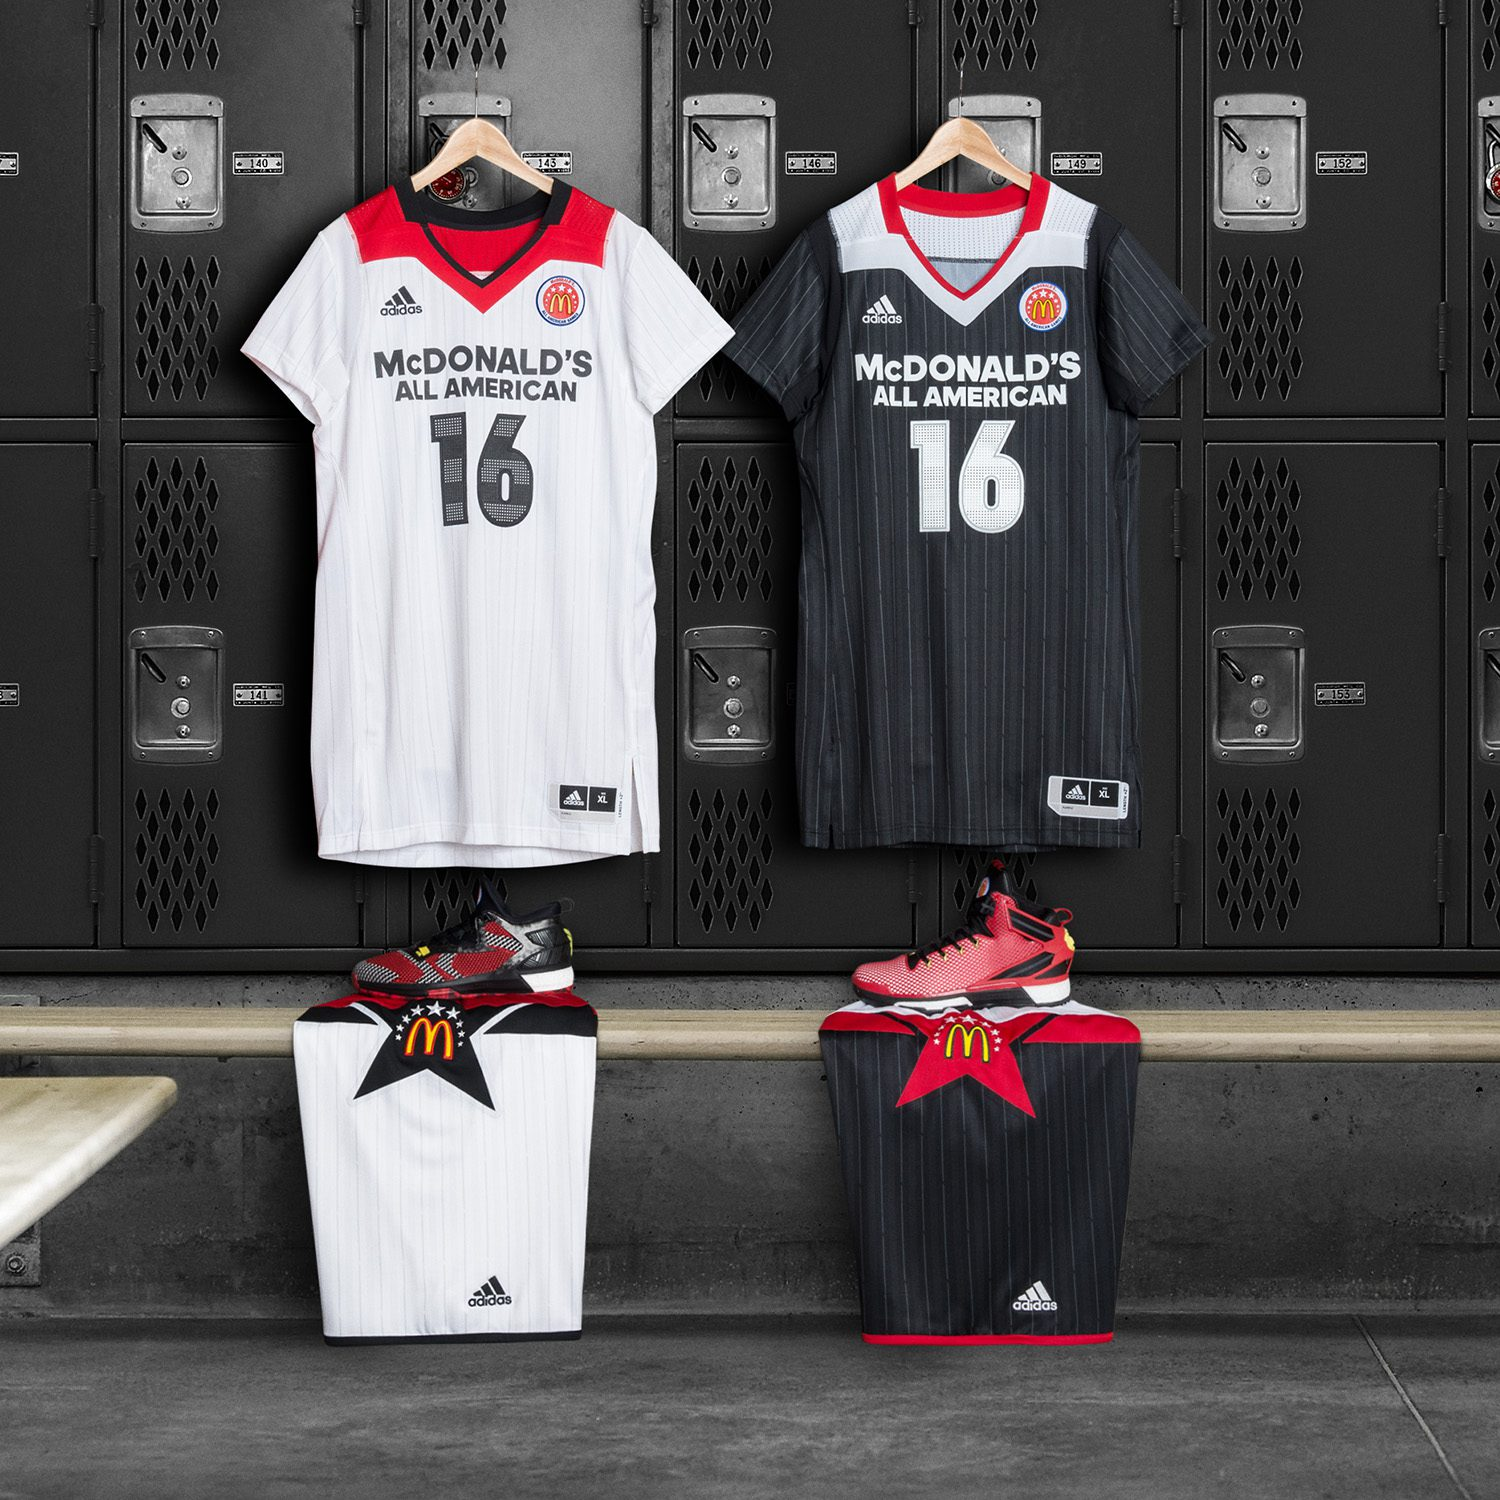 12207ff959 adidas Unveils Uniform Collection for 2016 McDonald¹s All American ...